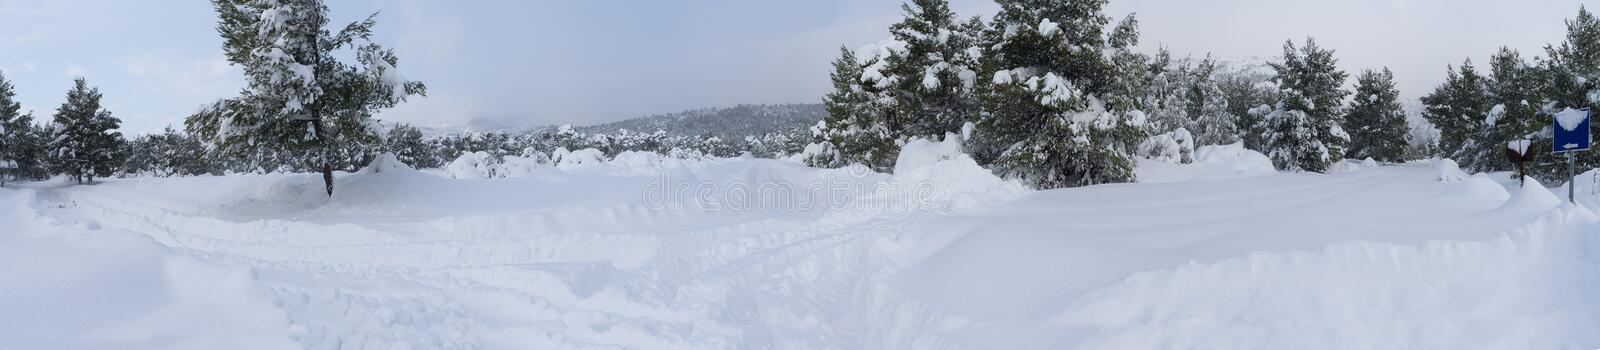 Panoramic view Wonderful winter with lots of snow and snow drifts in a Greek village on the island of Evia, Greece royalty free stock images